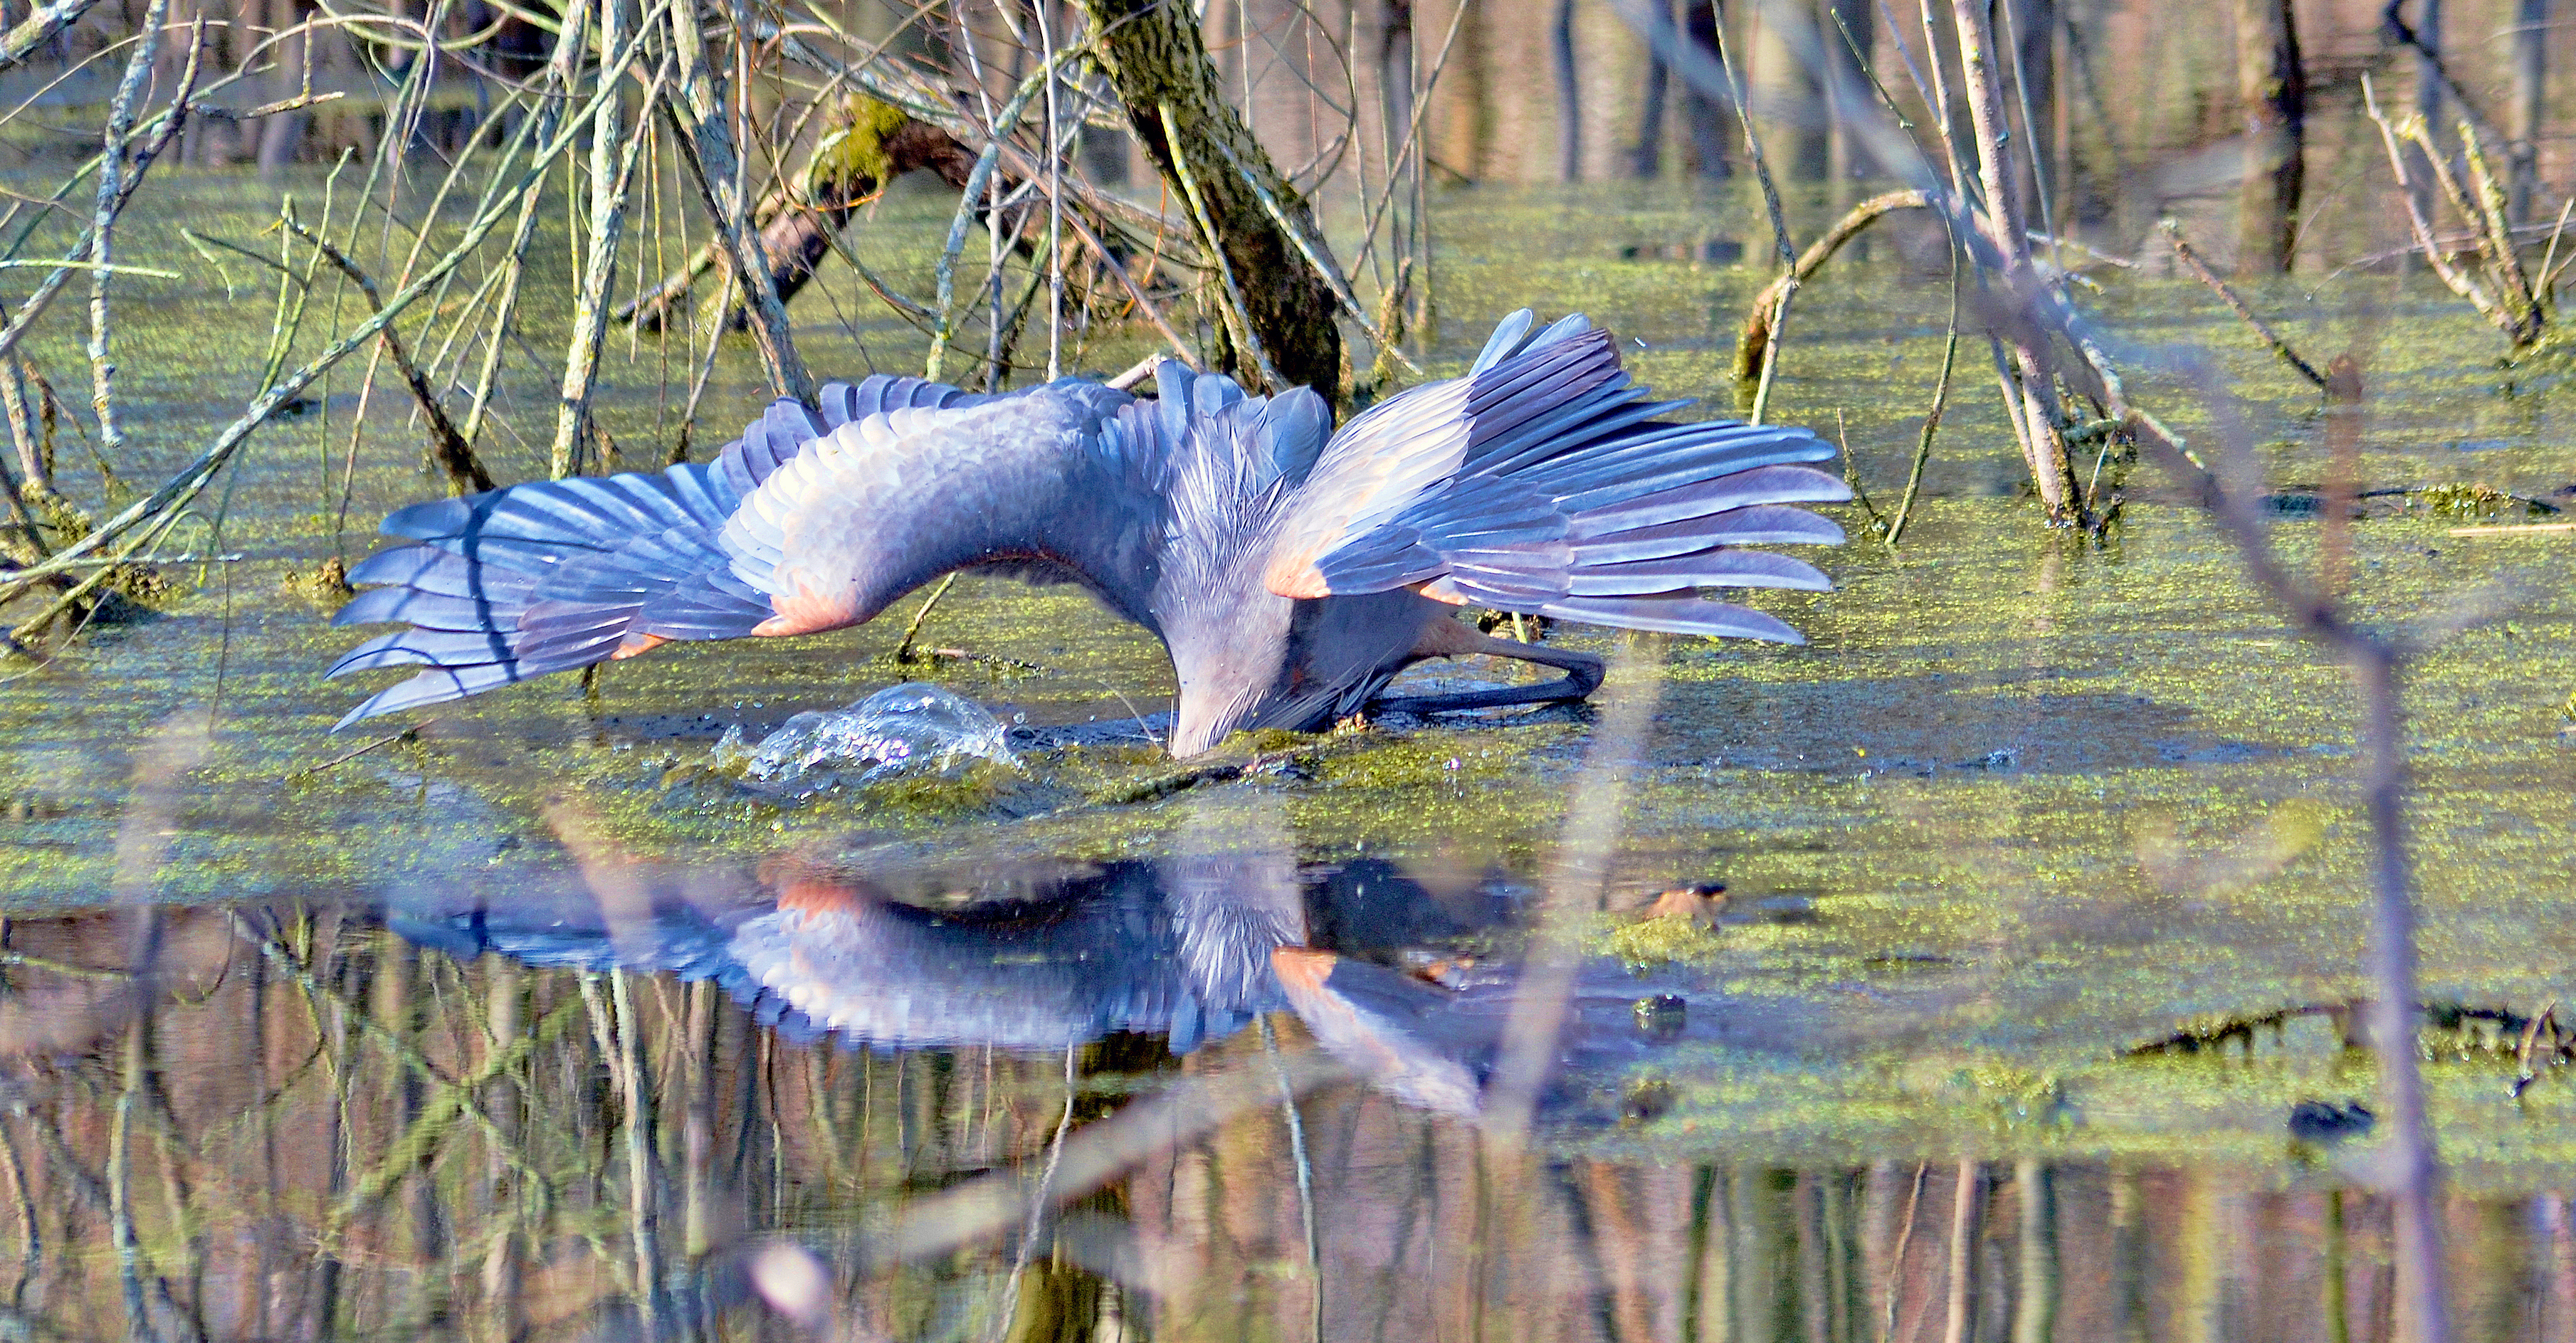 Great Blue Heron gone fishing<br />Yes, this Great Blue Heron is fishing at the Ottawa National Wildlife Refuge. The Great Blue Heron, America's largest heron, is a master at catching fish. (Photo by Maggi Dandar)